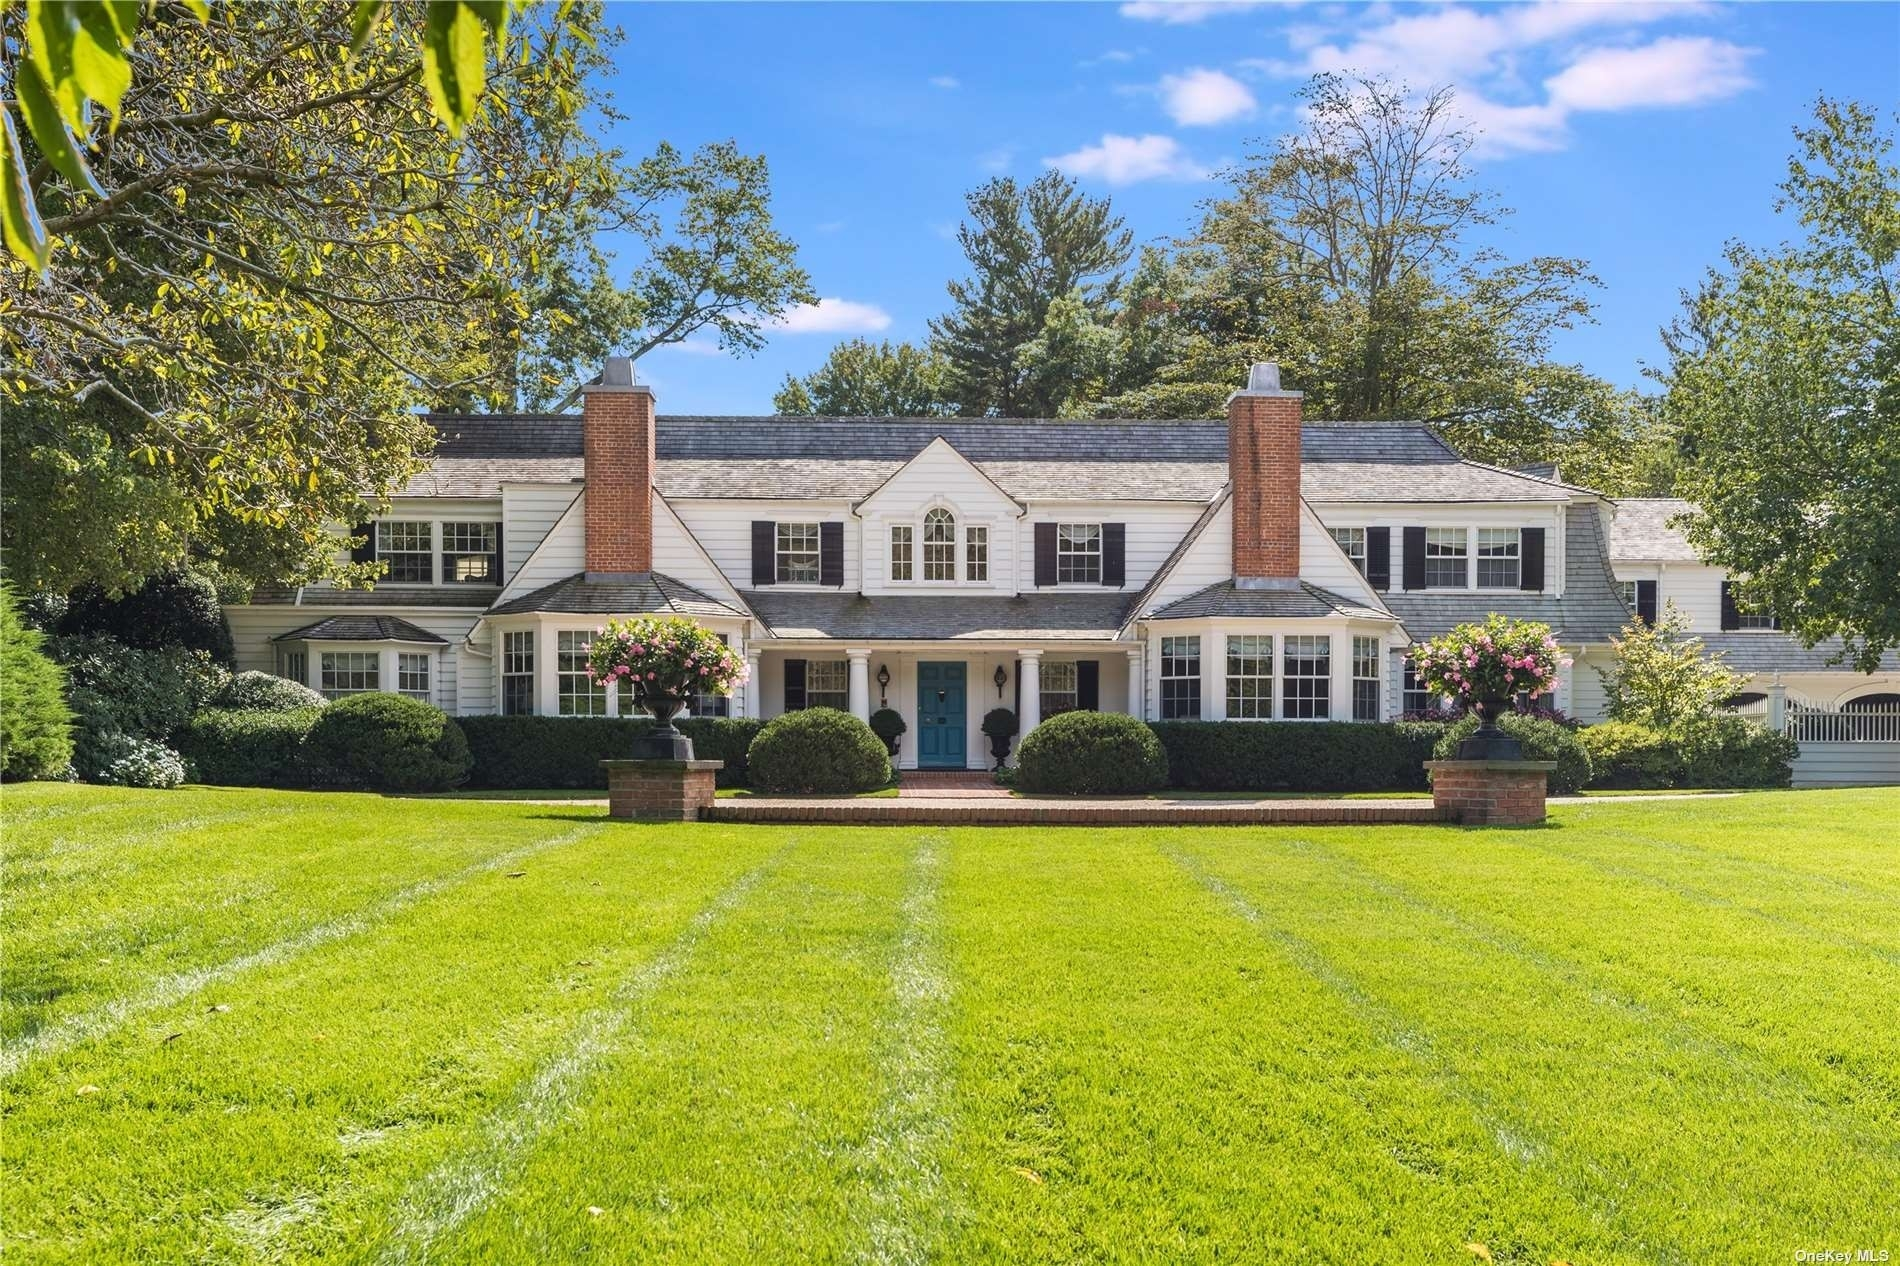 Single Family Home for Sale at Lattingtown, Locust Valley, NY 11560